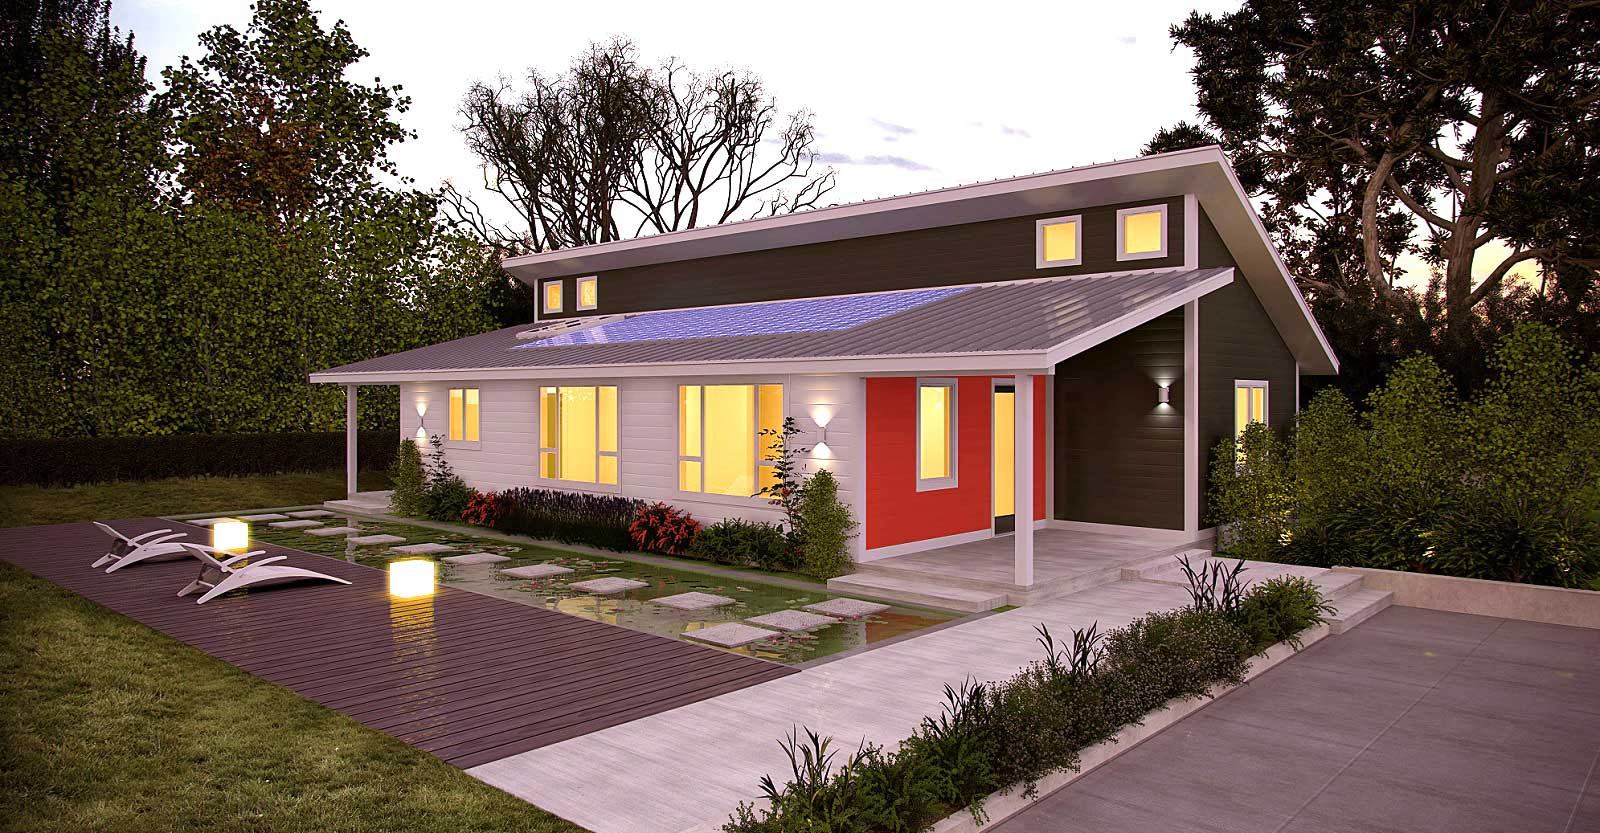 Prefab zero energy homes zero energy project for Zero net energy home